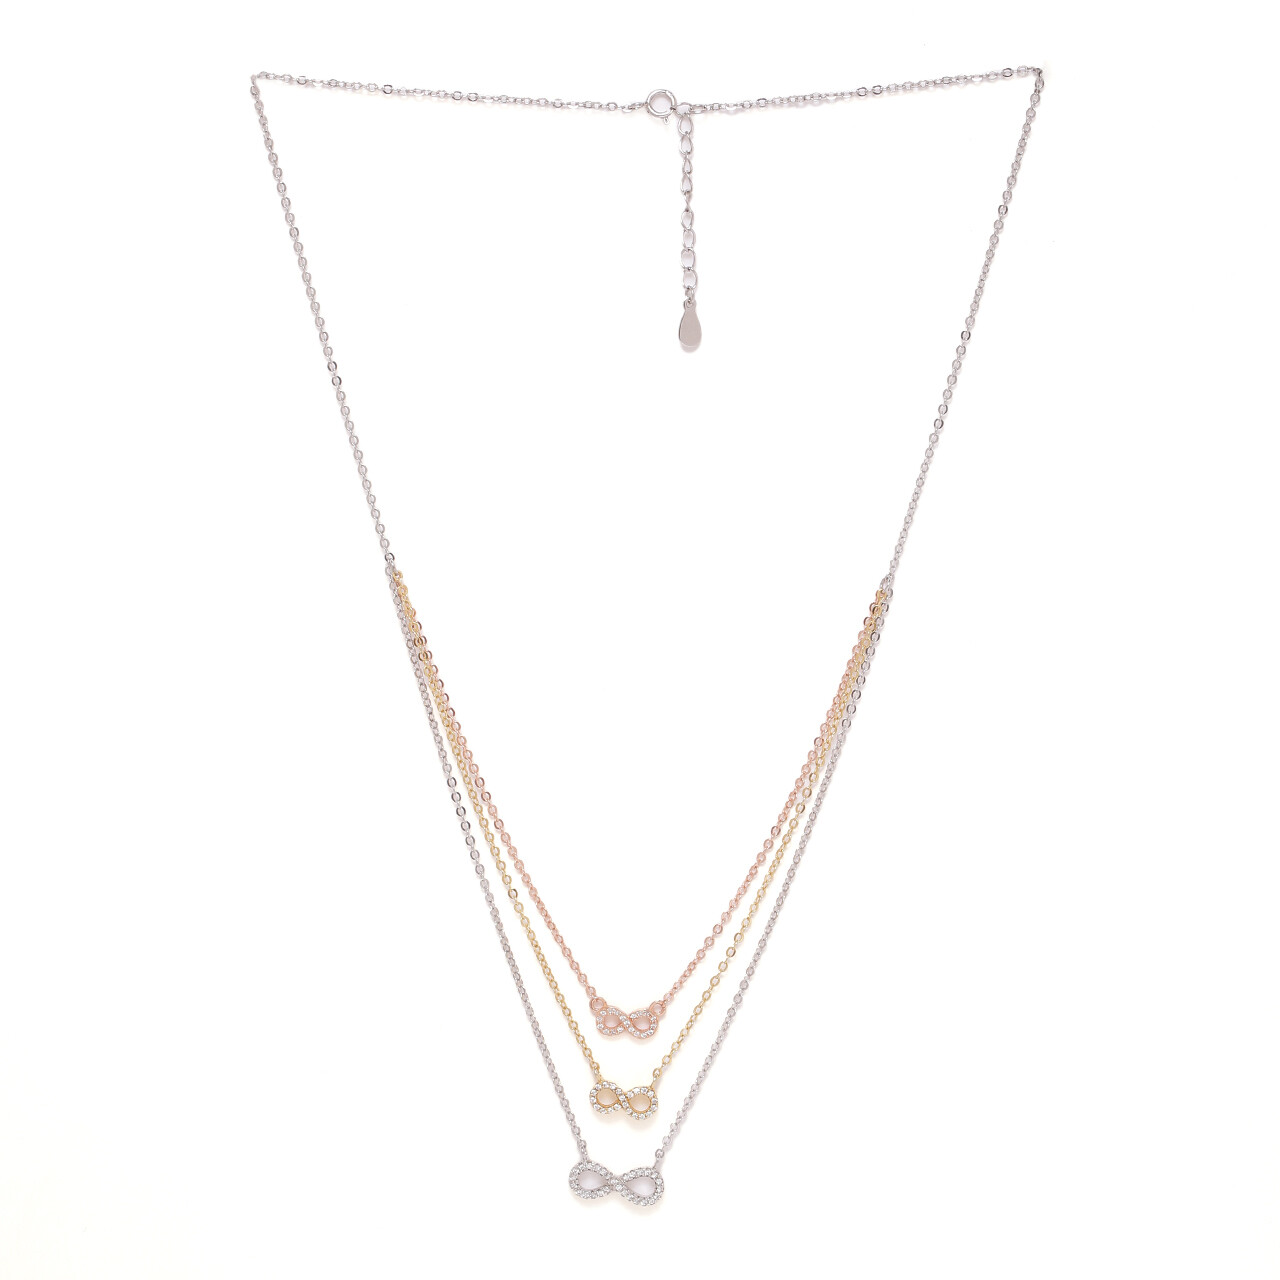 IndusDiva Layered Tri Color Necklace